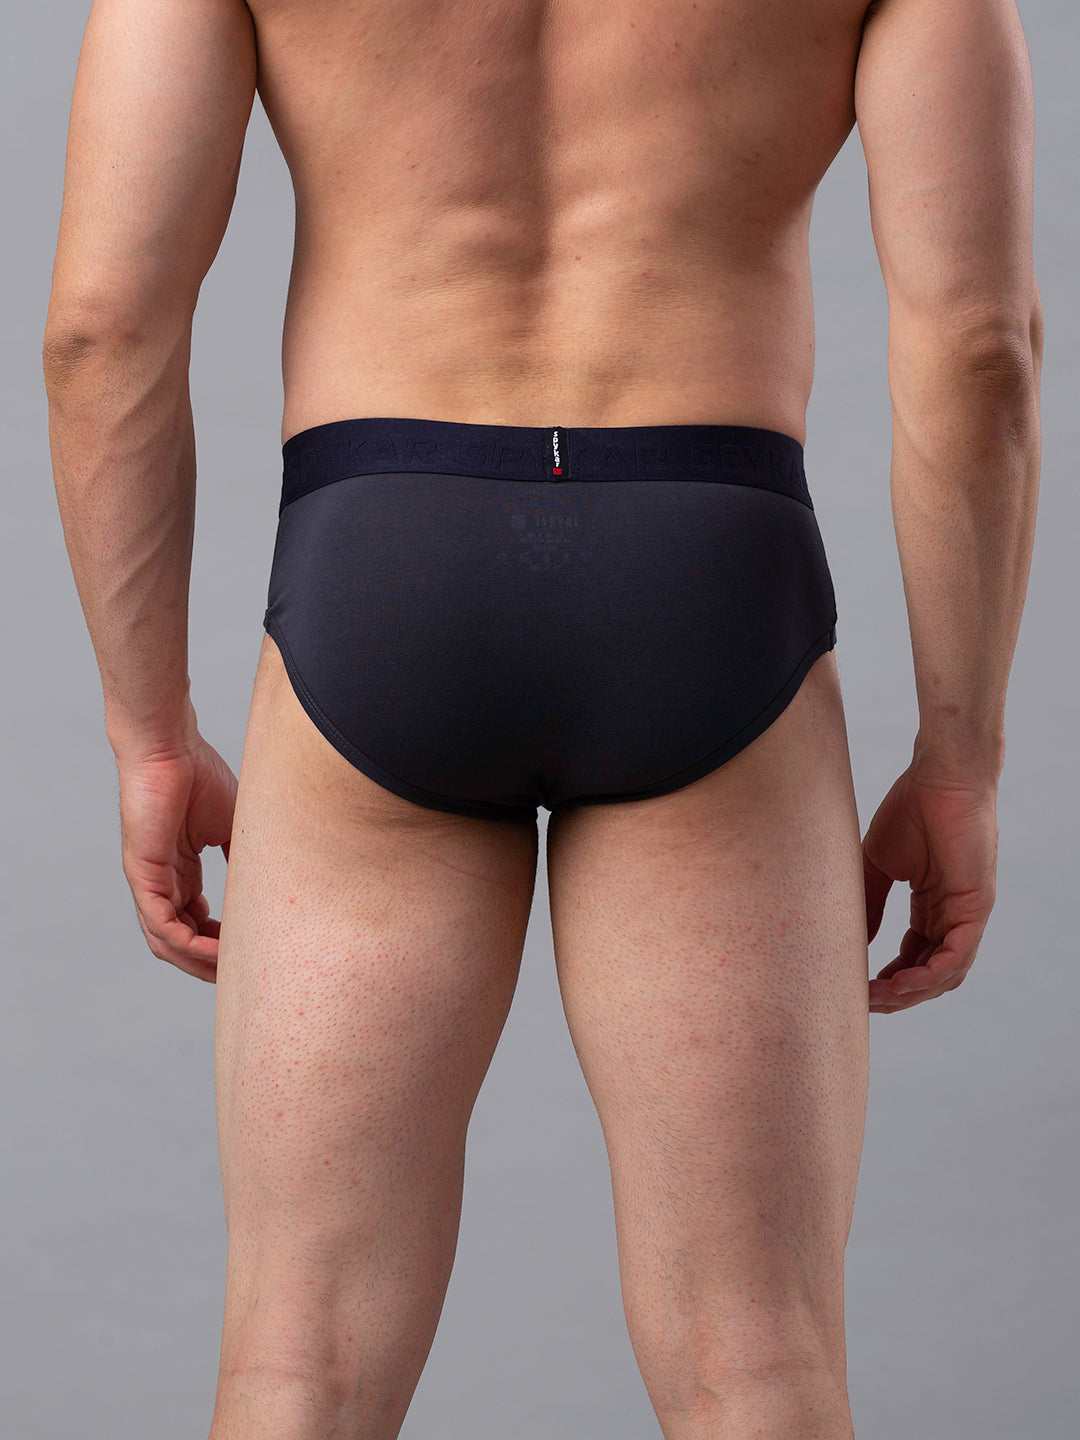 Underjeans Grey Cotton Brief - Pack of 2